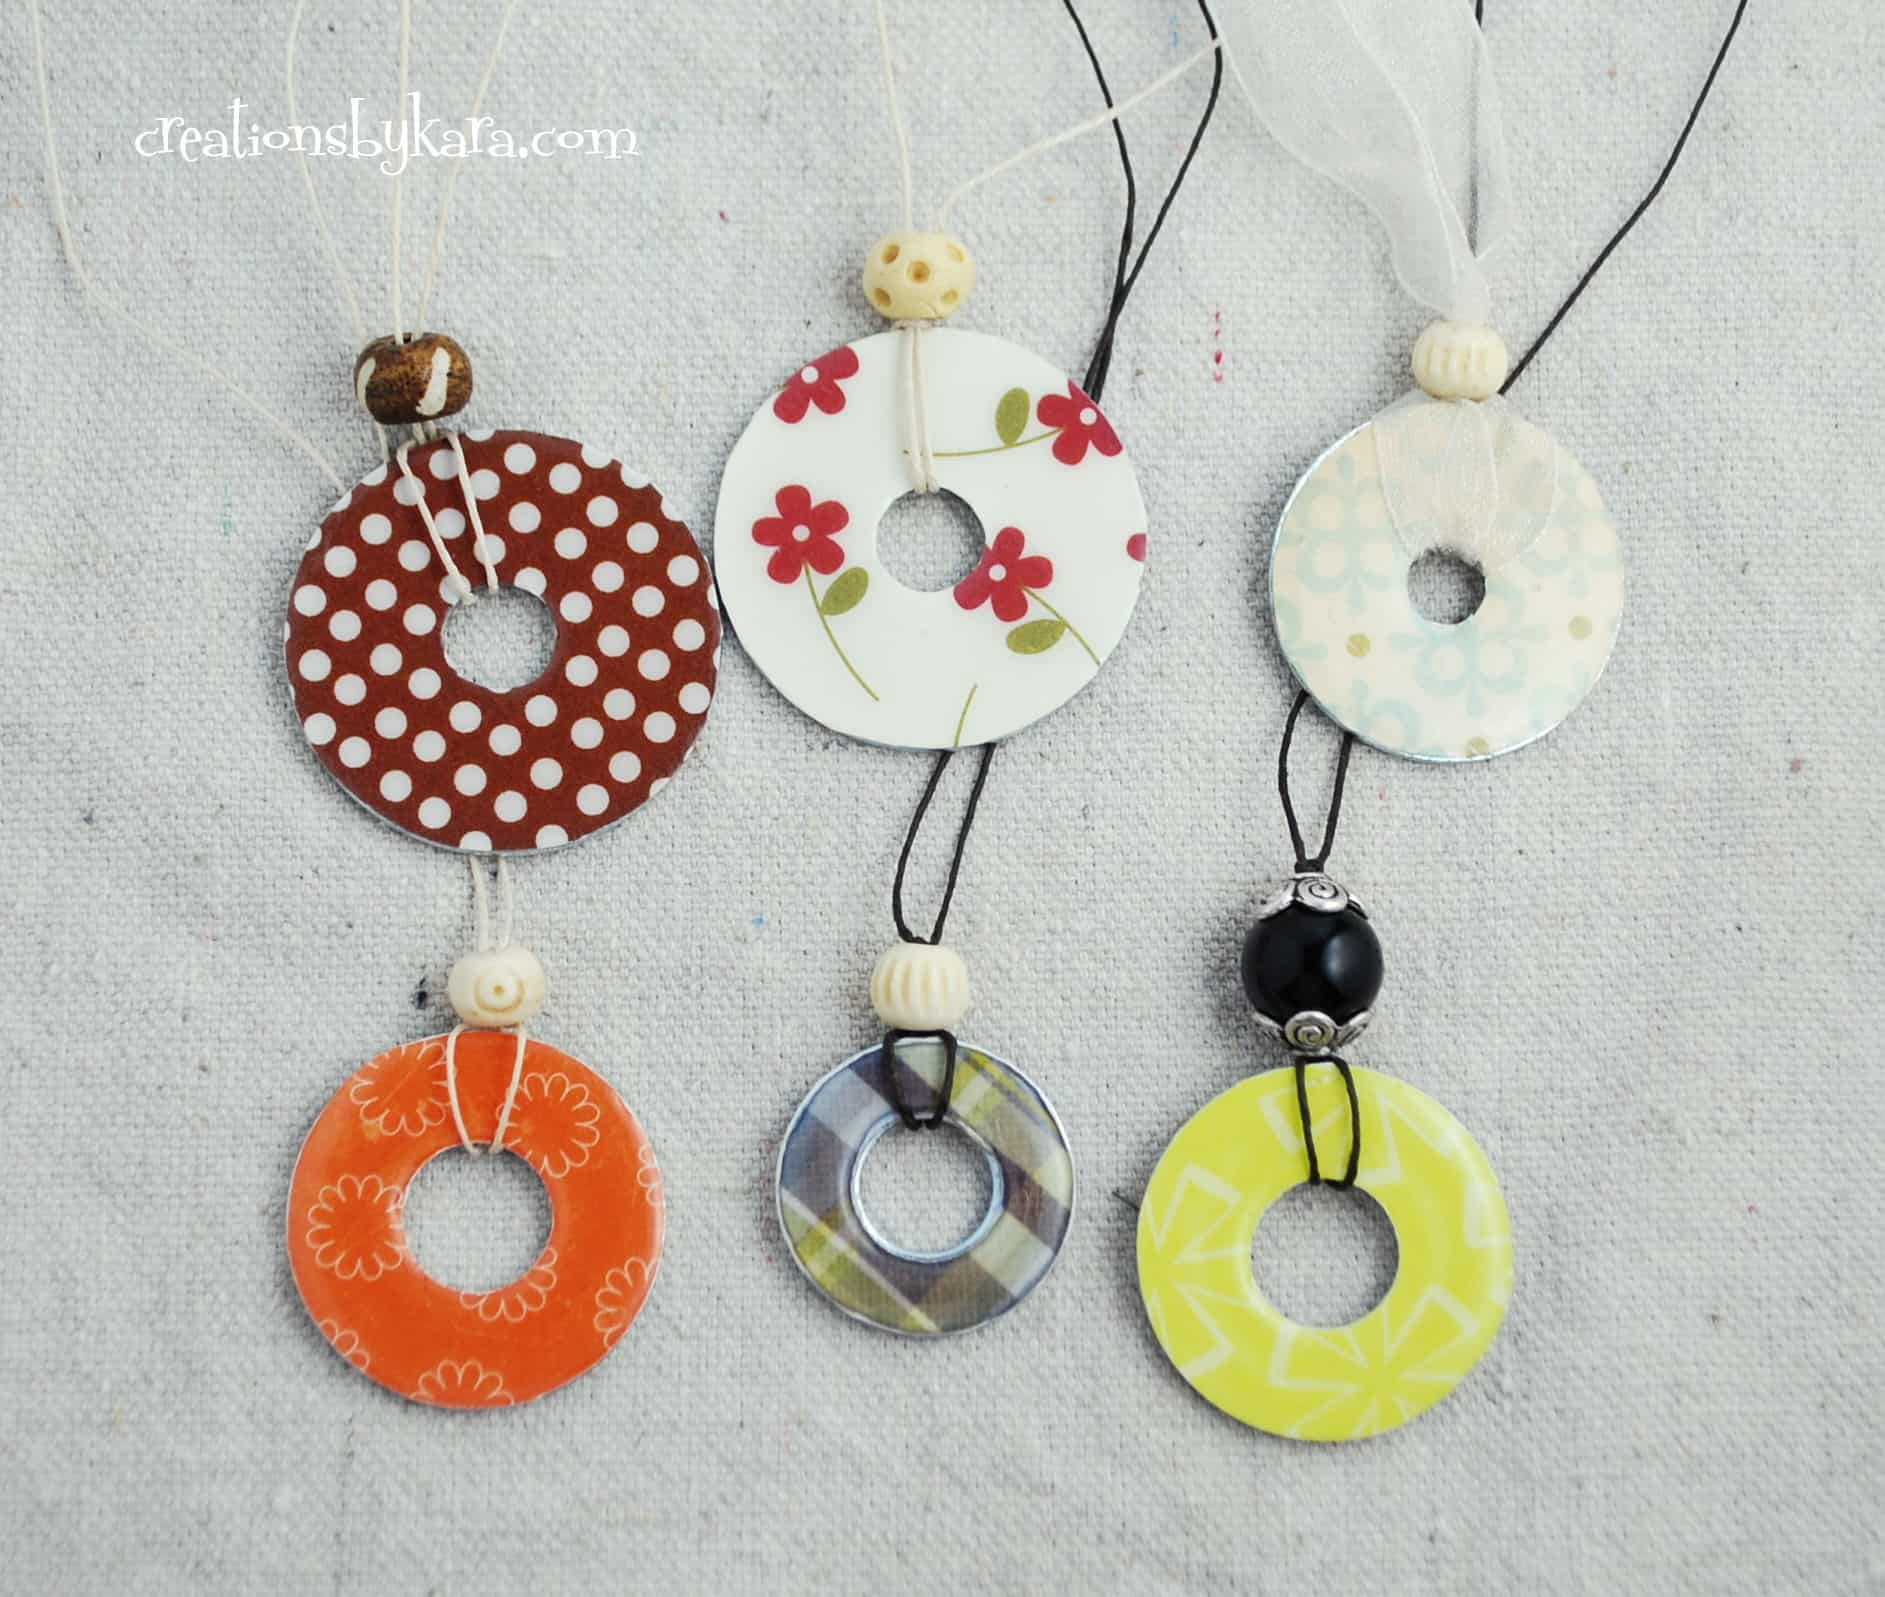 washer necklace tutorial 003 1 creations by kara